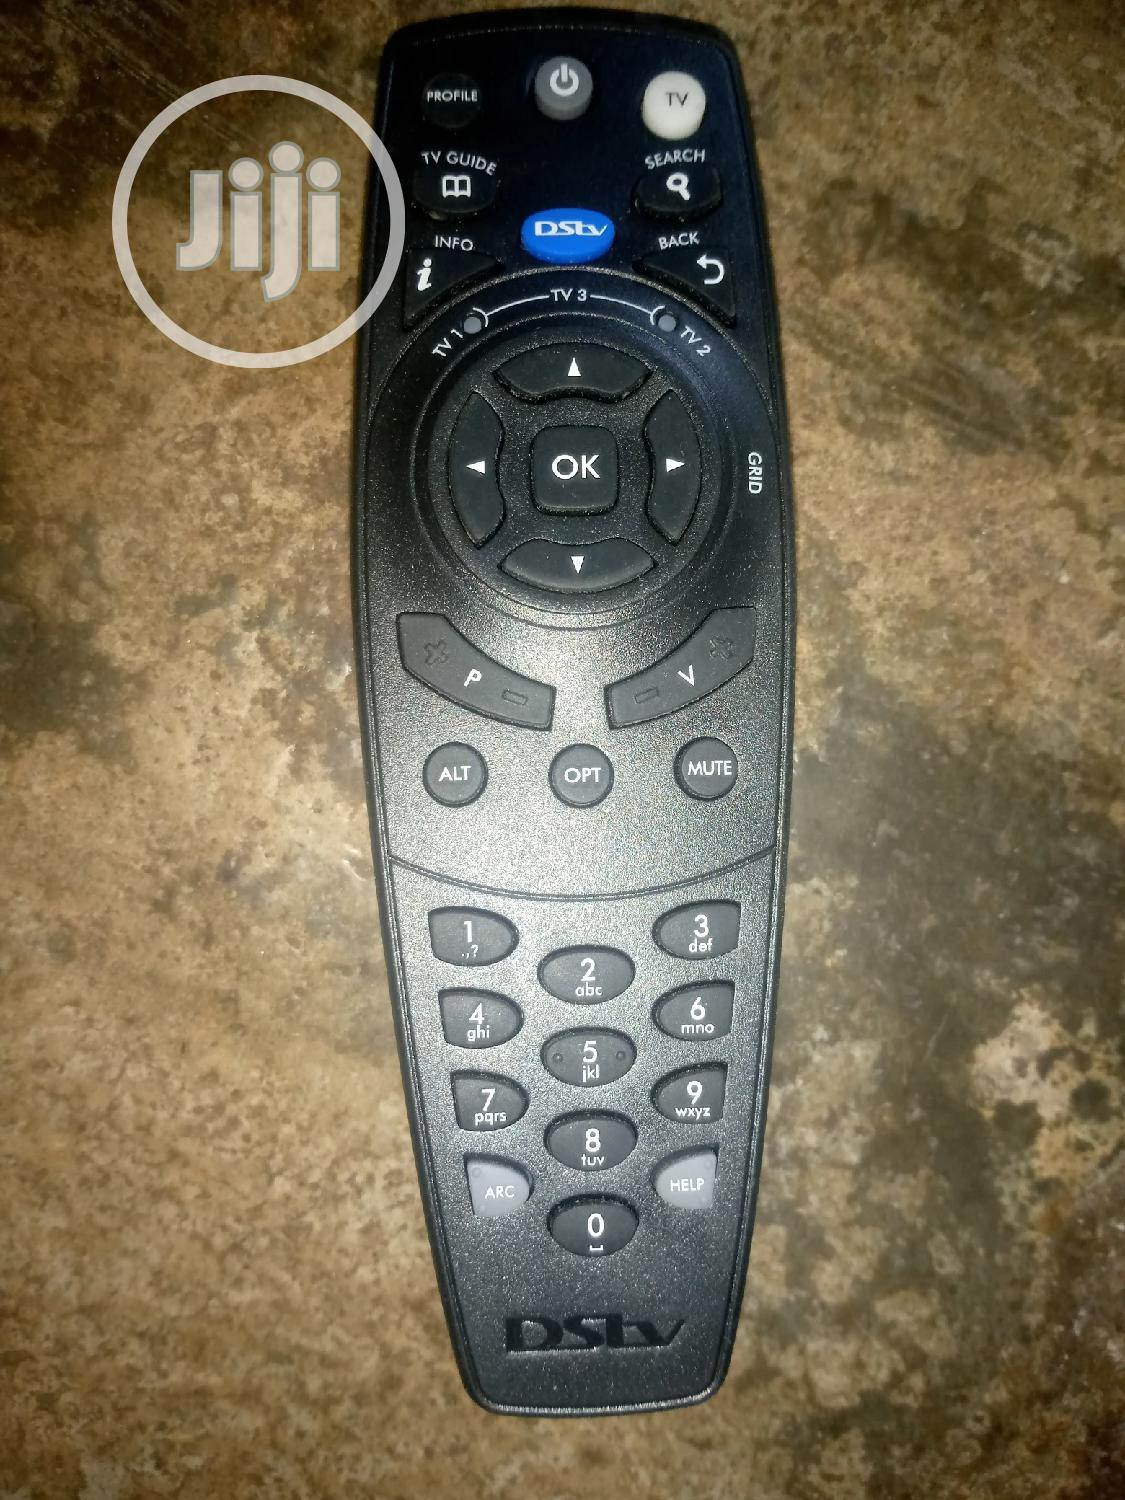 Dstv Hd Remote Control + Battery | Accessories & Supplies for Electronics for sale in Ibeju, Lagos State, Nigeria